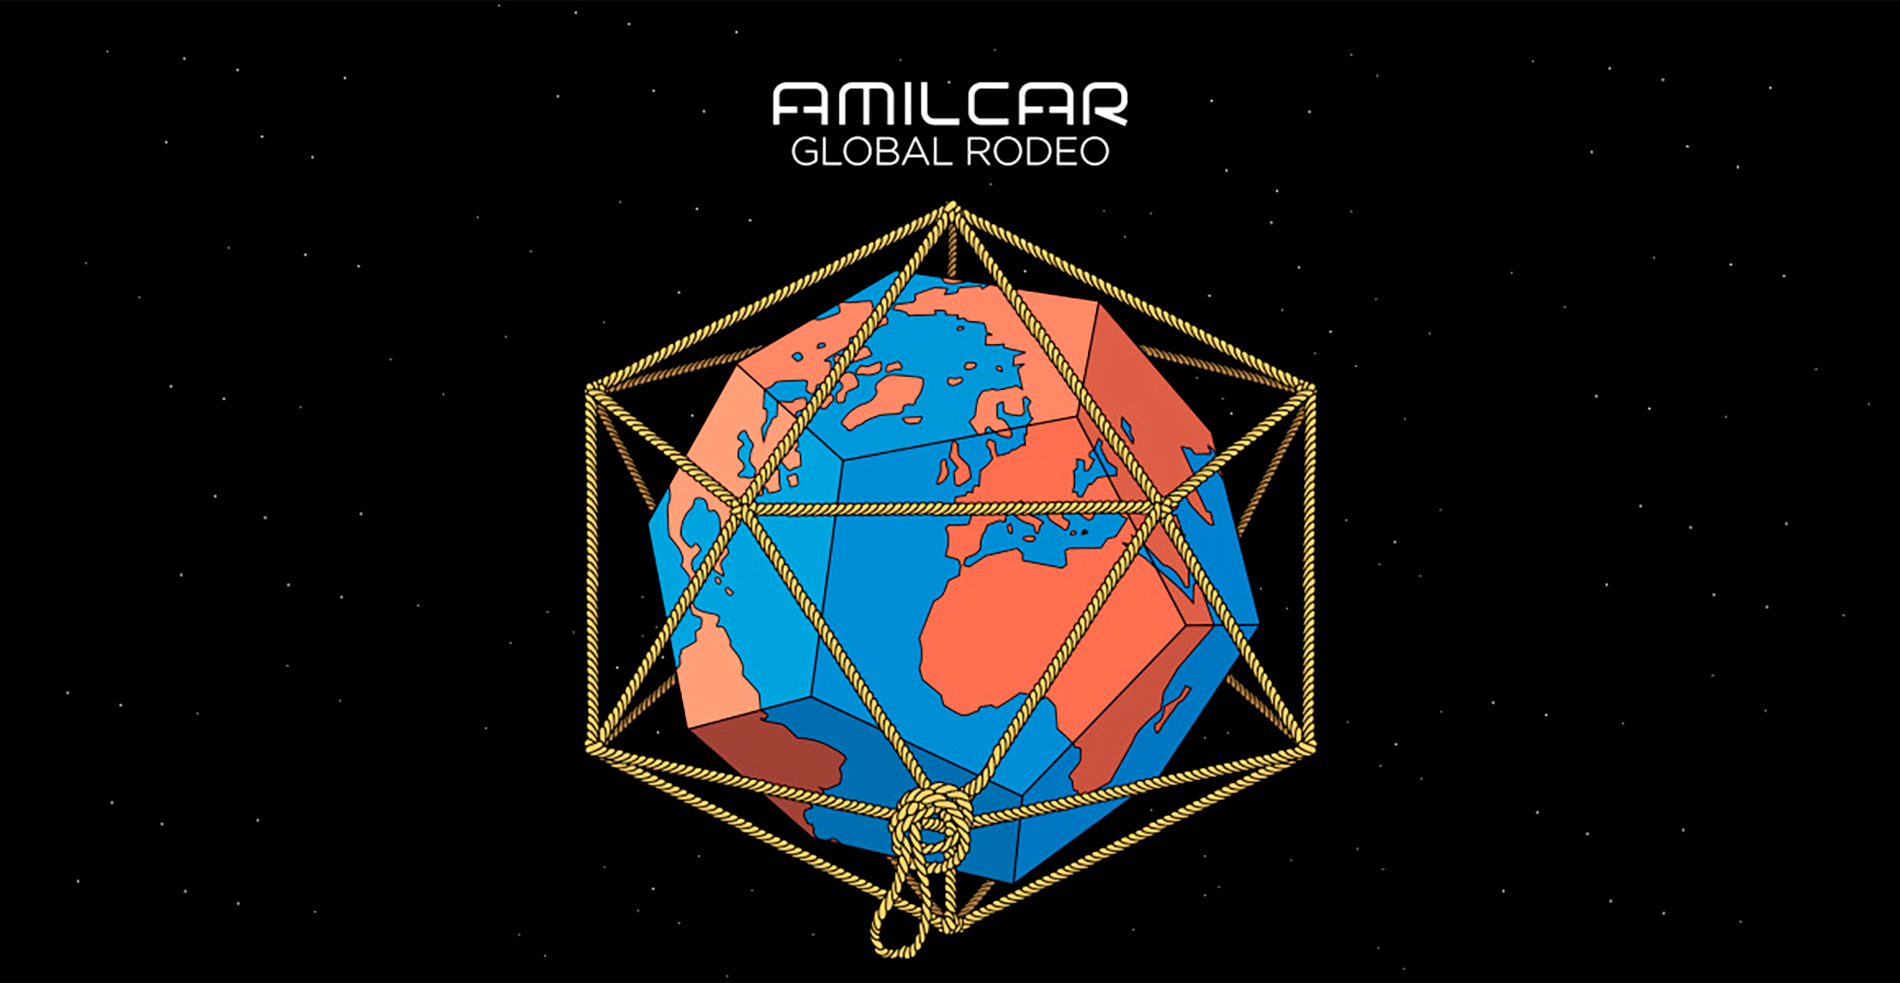 Amilcar-music-GLOBAL-RODEO-new-Album-1900x983